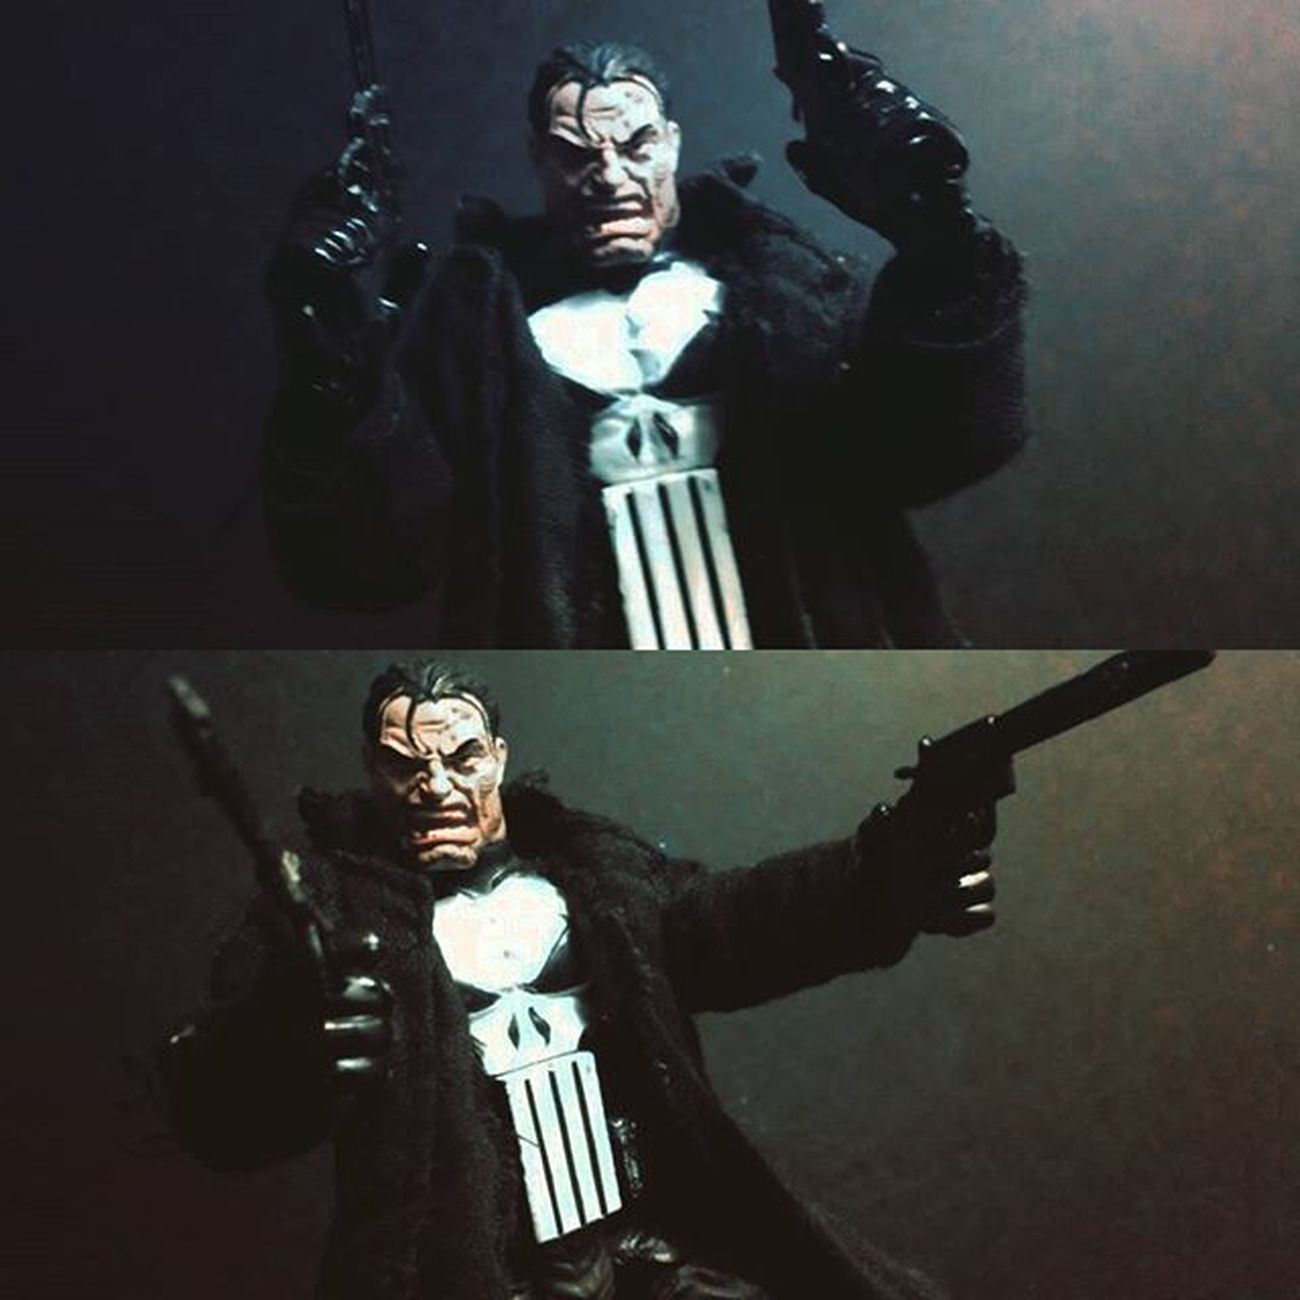 Really happy man I got this badass punisher figure from a really good friend of mine @kellynthegreat thanks bro I really appreciate it man Means a lot gonna take tons of pics with this guy 😄 Daredevil Punisher ThePunisher Urbanlegends Marvellegends Frankcastle Badass Nerd Comics Netflix Extremelyhappy Toybiz Toyslagram Toyslagram Toysrmydrug Disney MarvelKnights Actiontoyart Articulatedcomicbook Actionfigures Figures Figurelife Figurecollection Collector Tcb_peekaboo